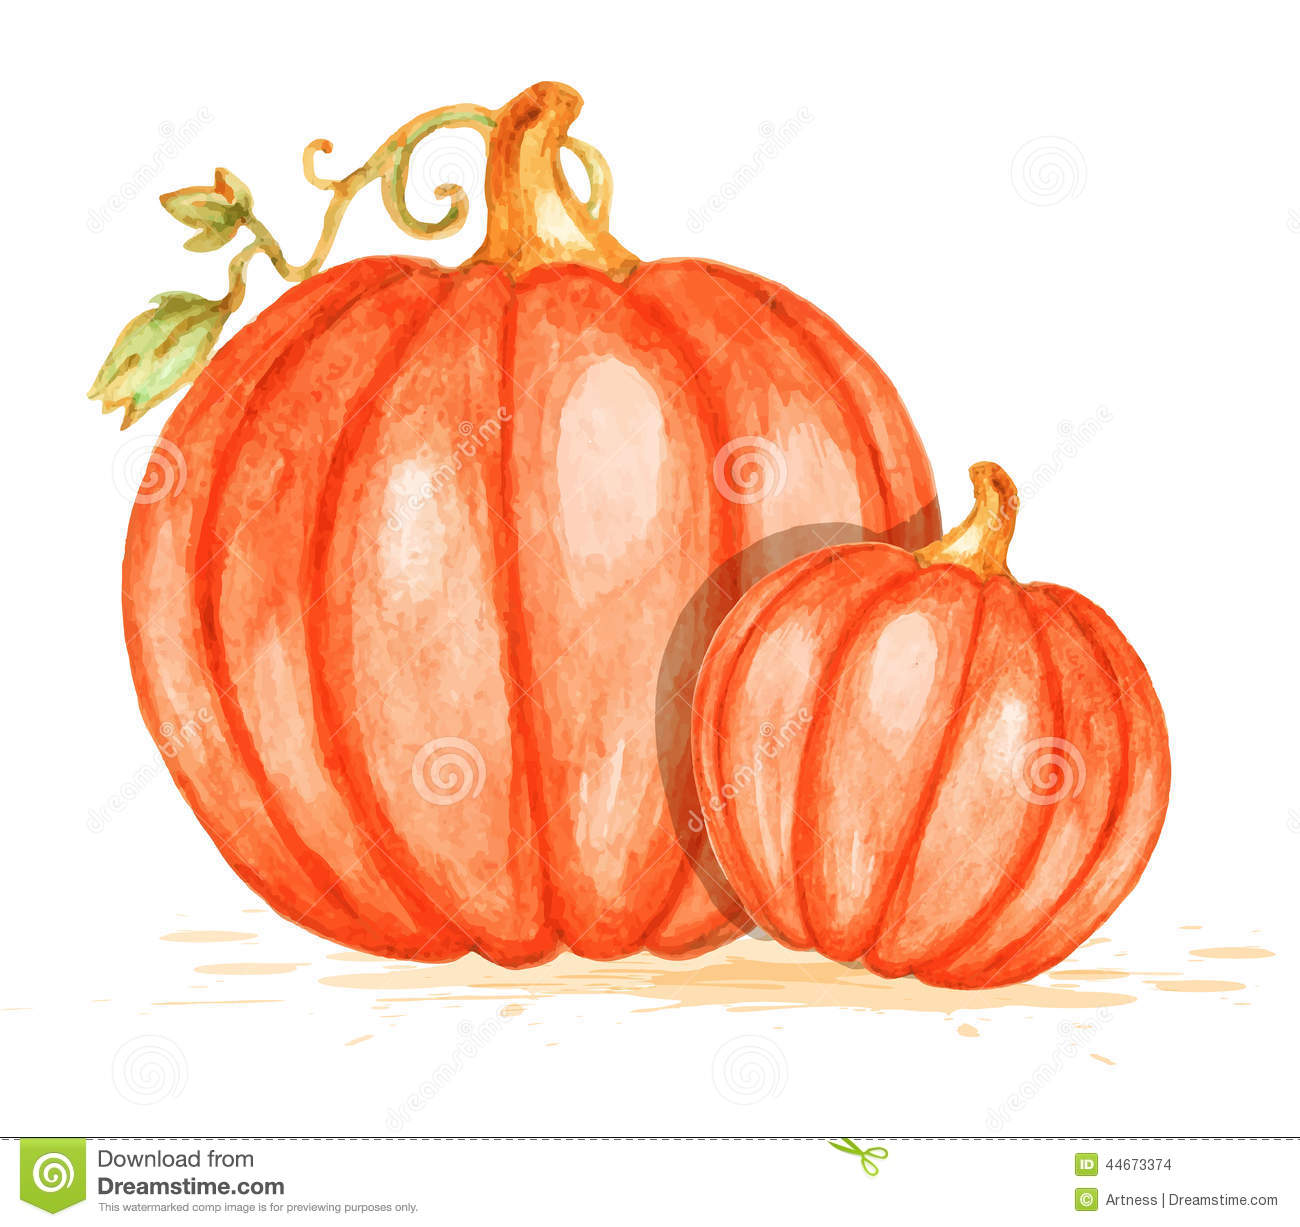 Pumpkin watercolor clipart - ClipartFest image royalty free stock